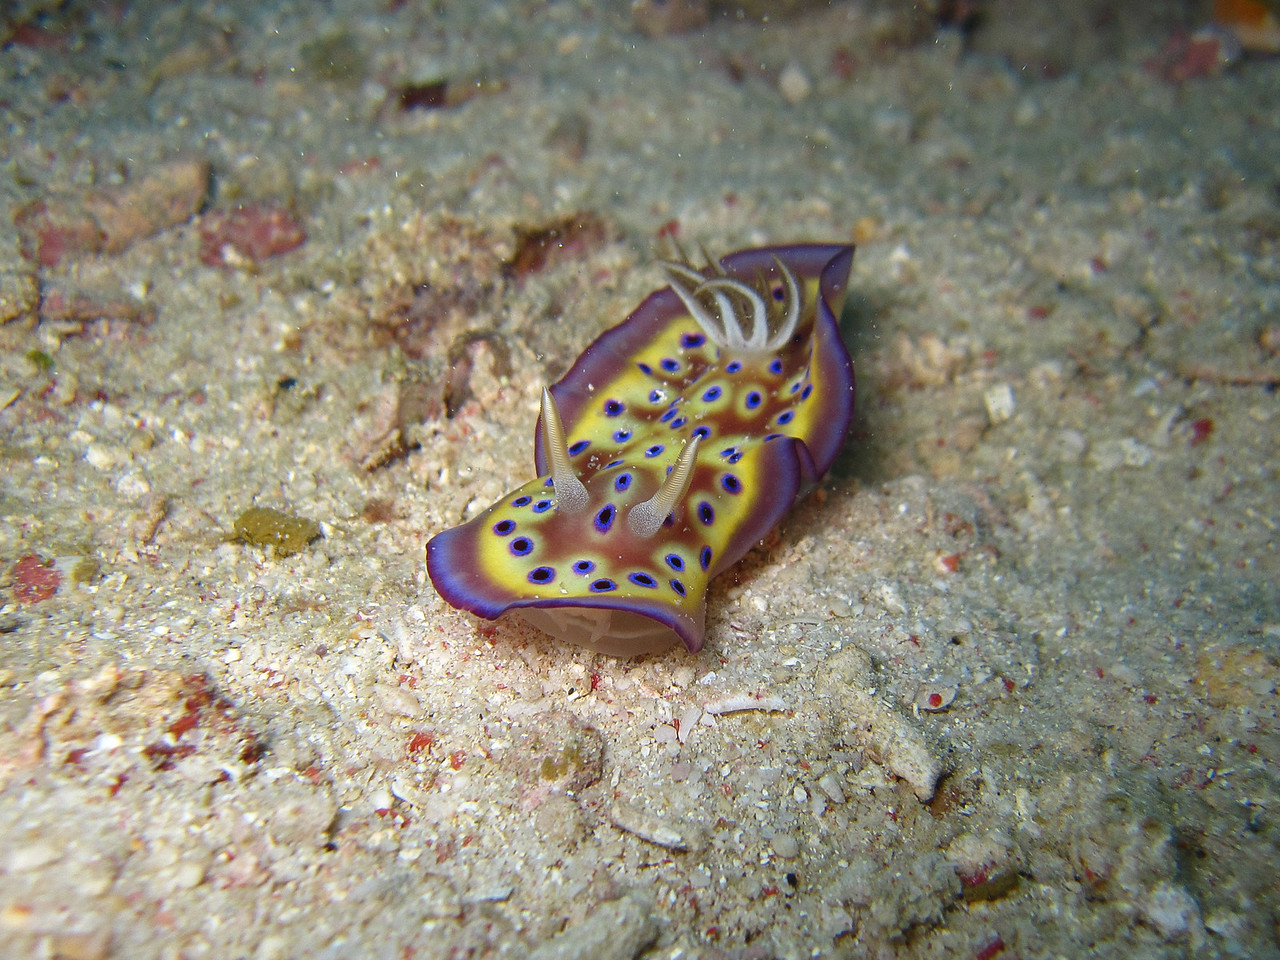 Kune's Chromodoris nudibranch. See the mouth just under his wavy skirt.